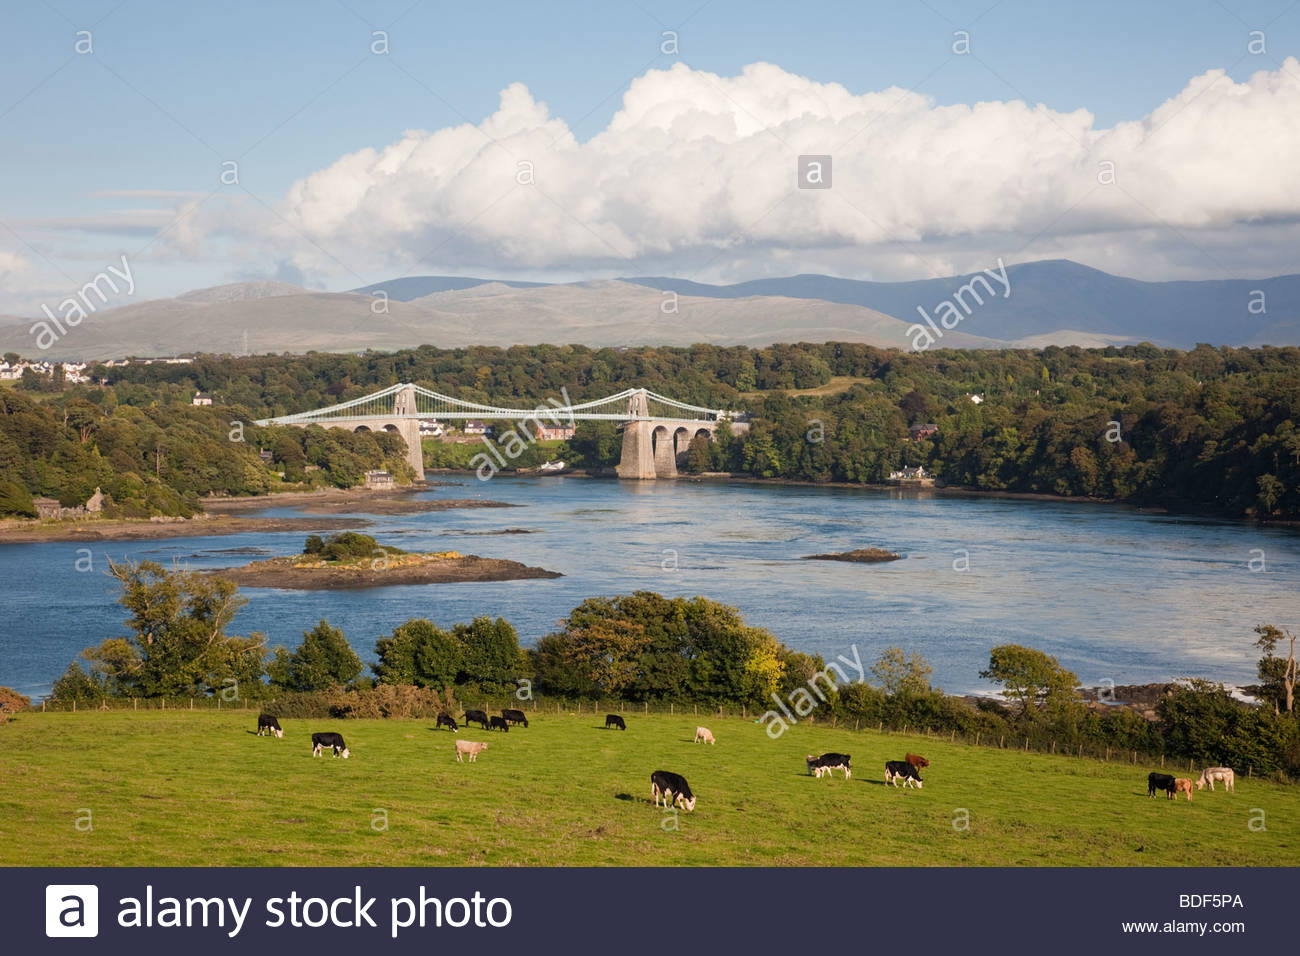 Scenic view of the Menai Strait in summer. Menai Bridge (Porthaethwy) Isle of Anglesey (Ynys Mon) North Wales UK - Stock Image